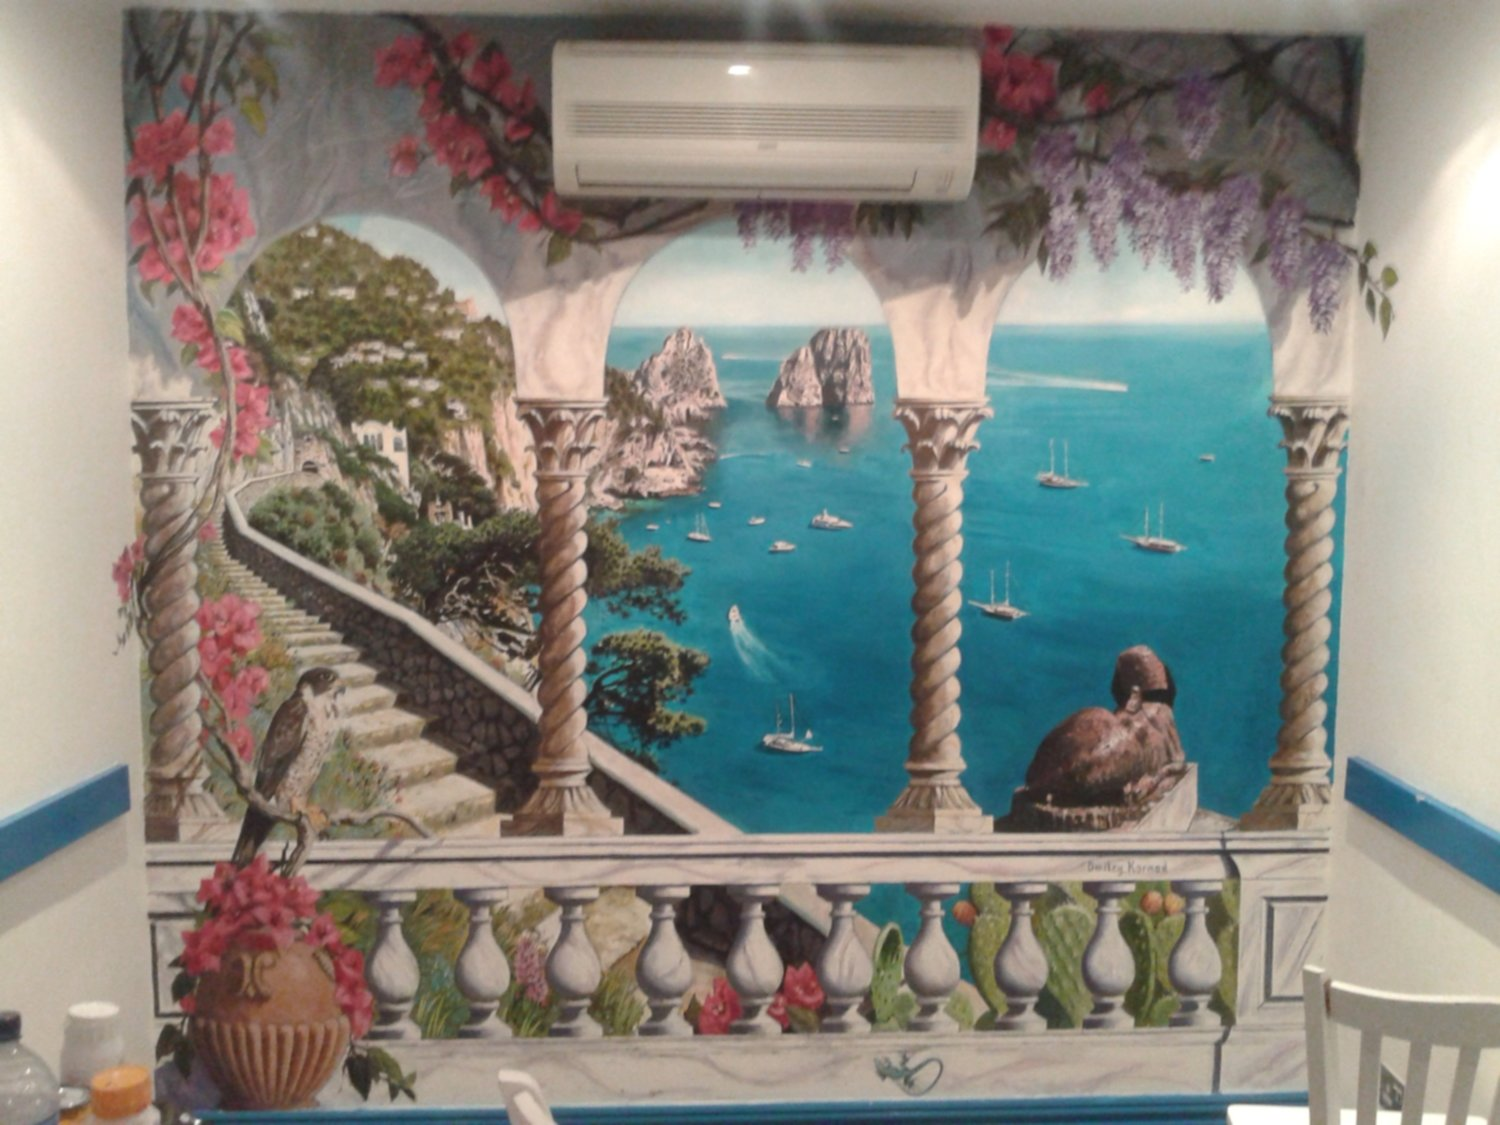 Mural of Capri painted in the restaurant Capri